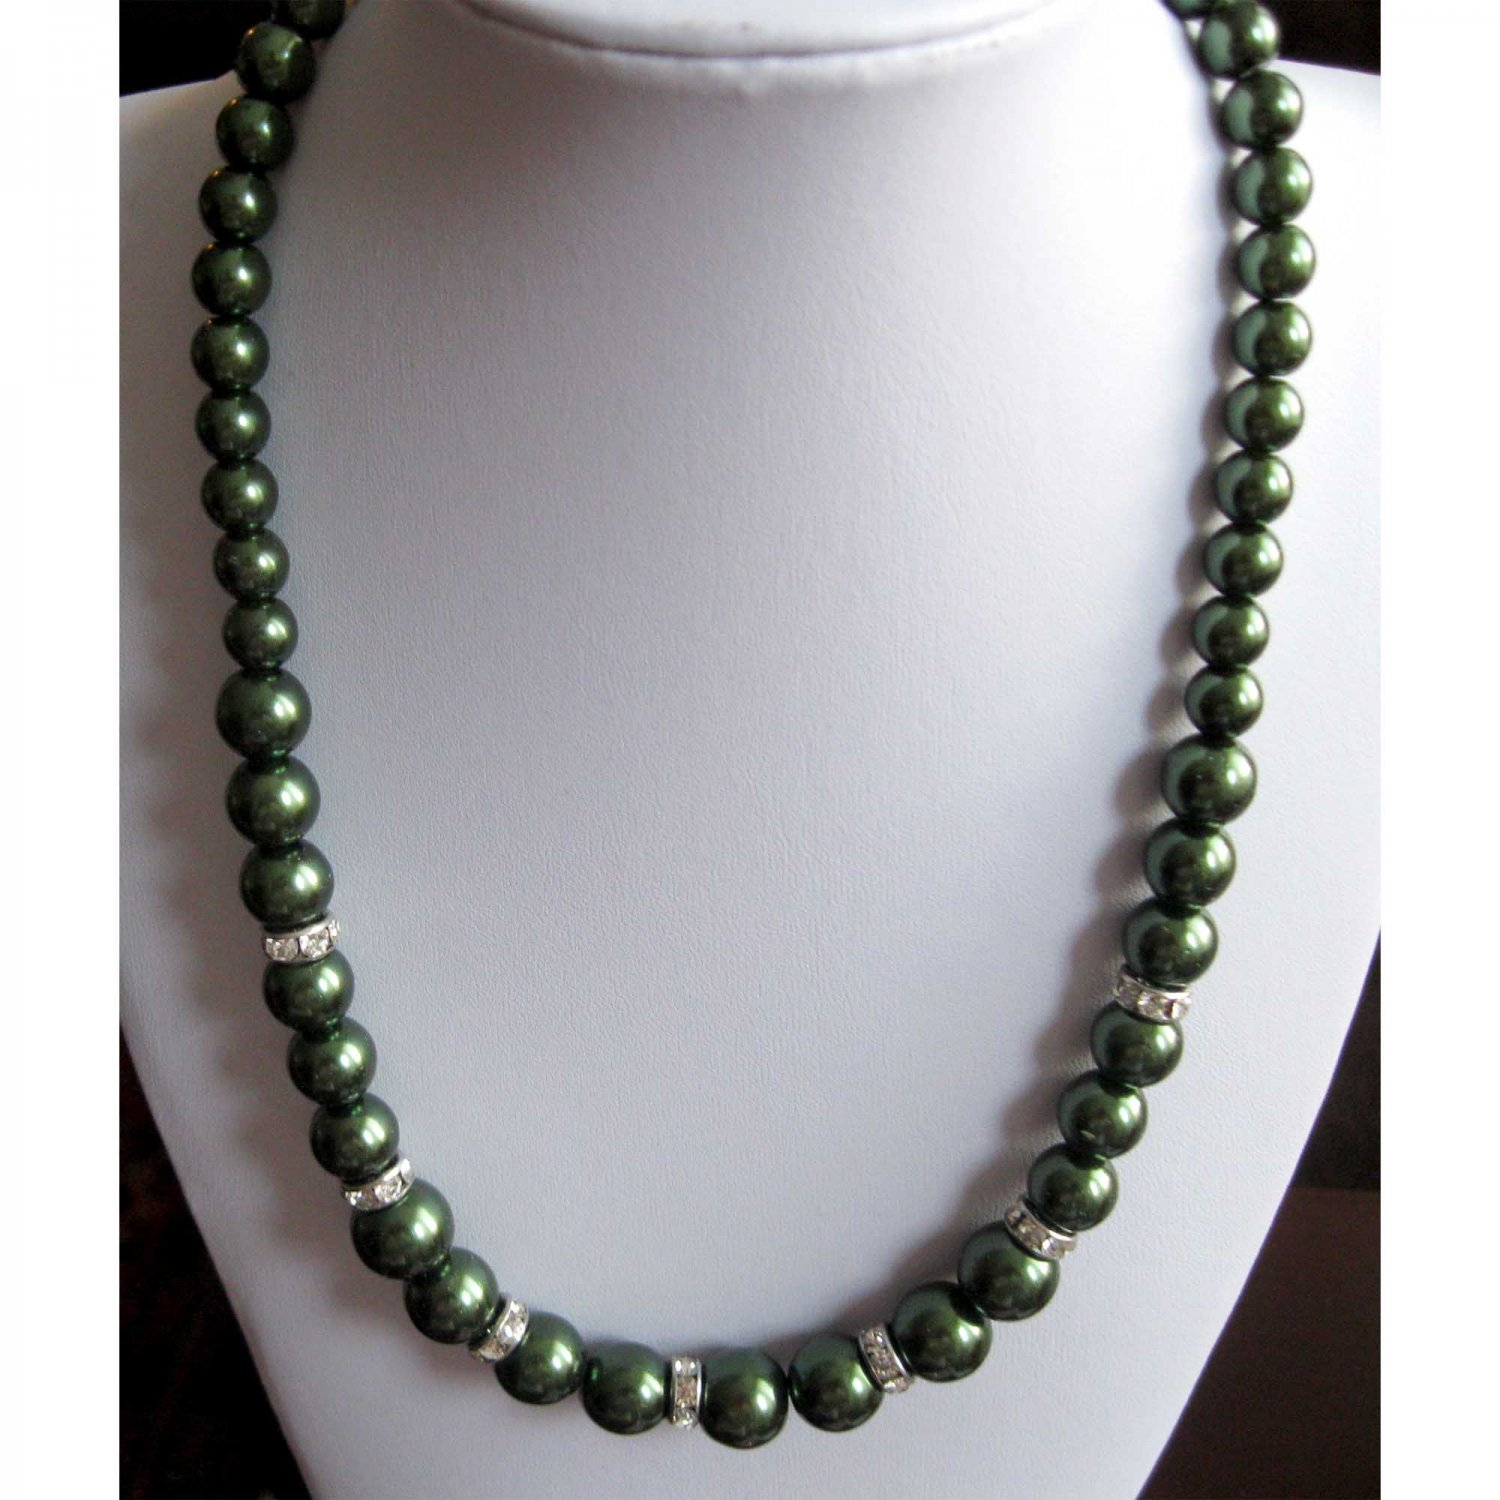 Green faux pearl necklace with crystal rondelles